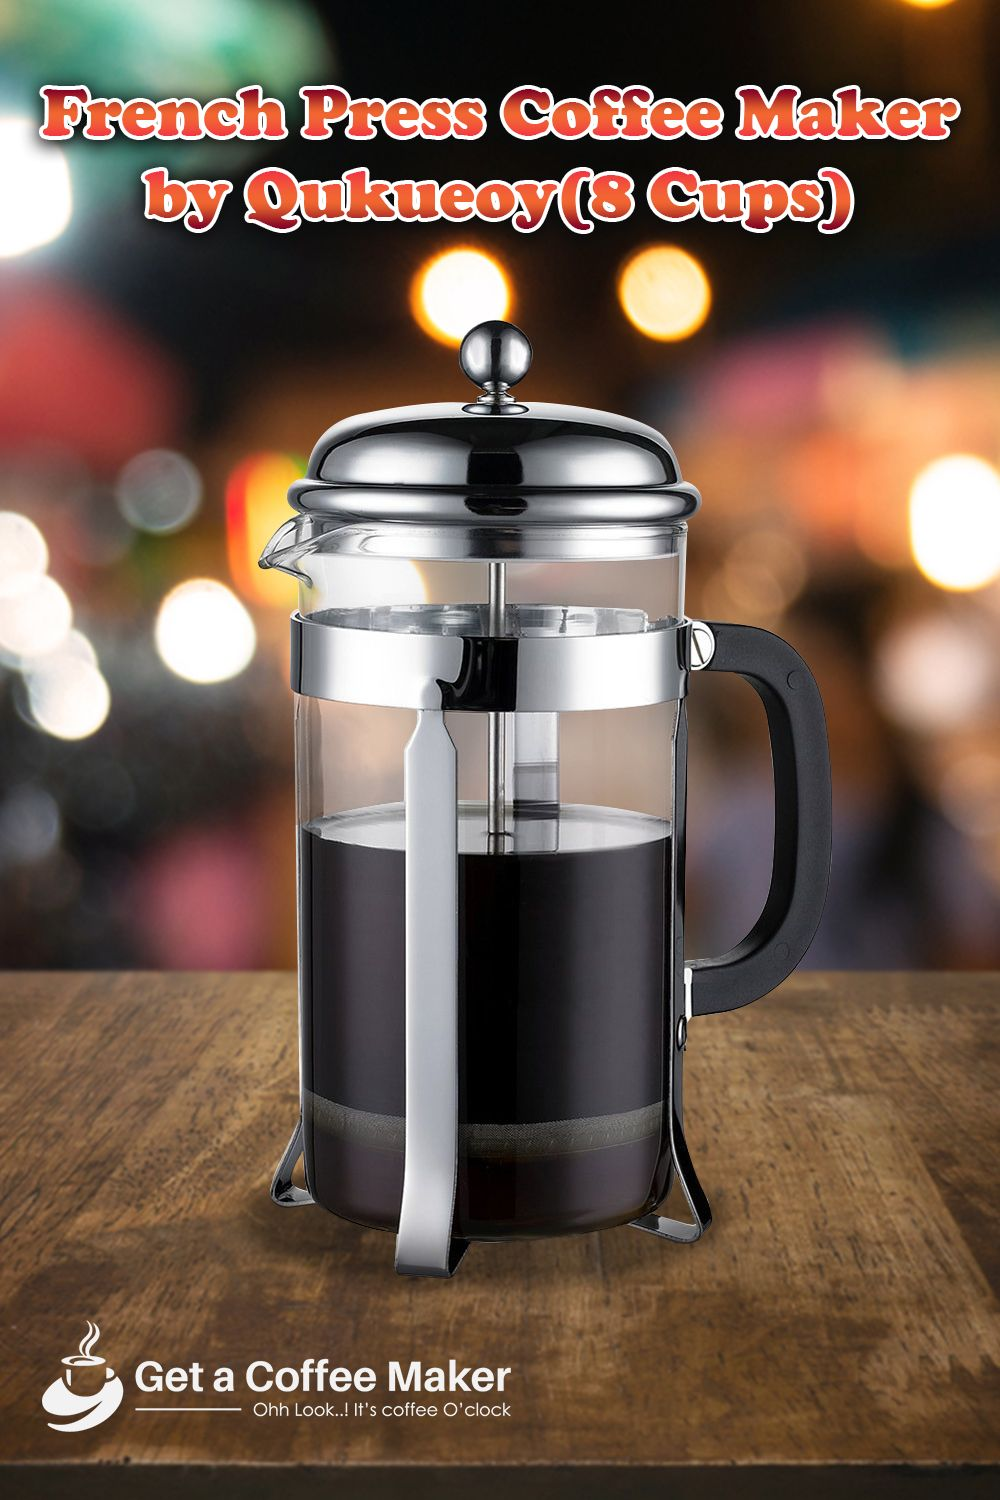 Top 10 French Press Coffee Makers June 2020 Reviews Buyers Guide French Press Coffee Maker French Press Coffee Best French Press Coffee